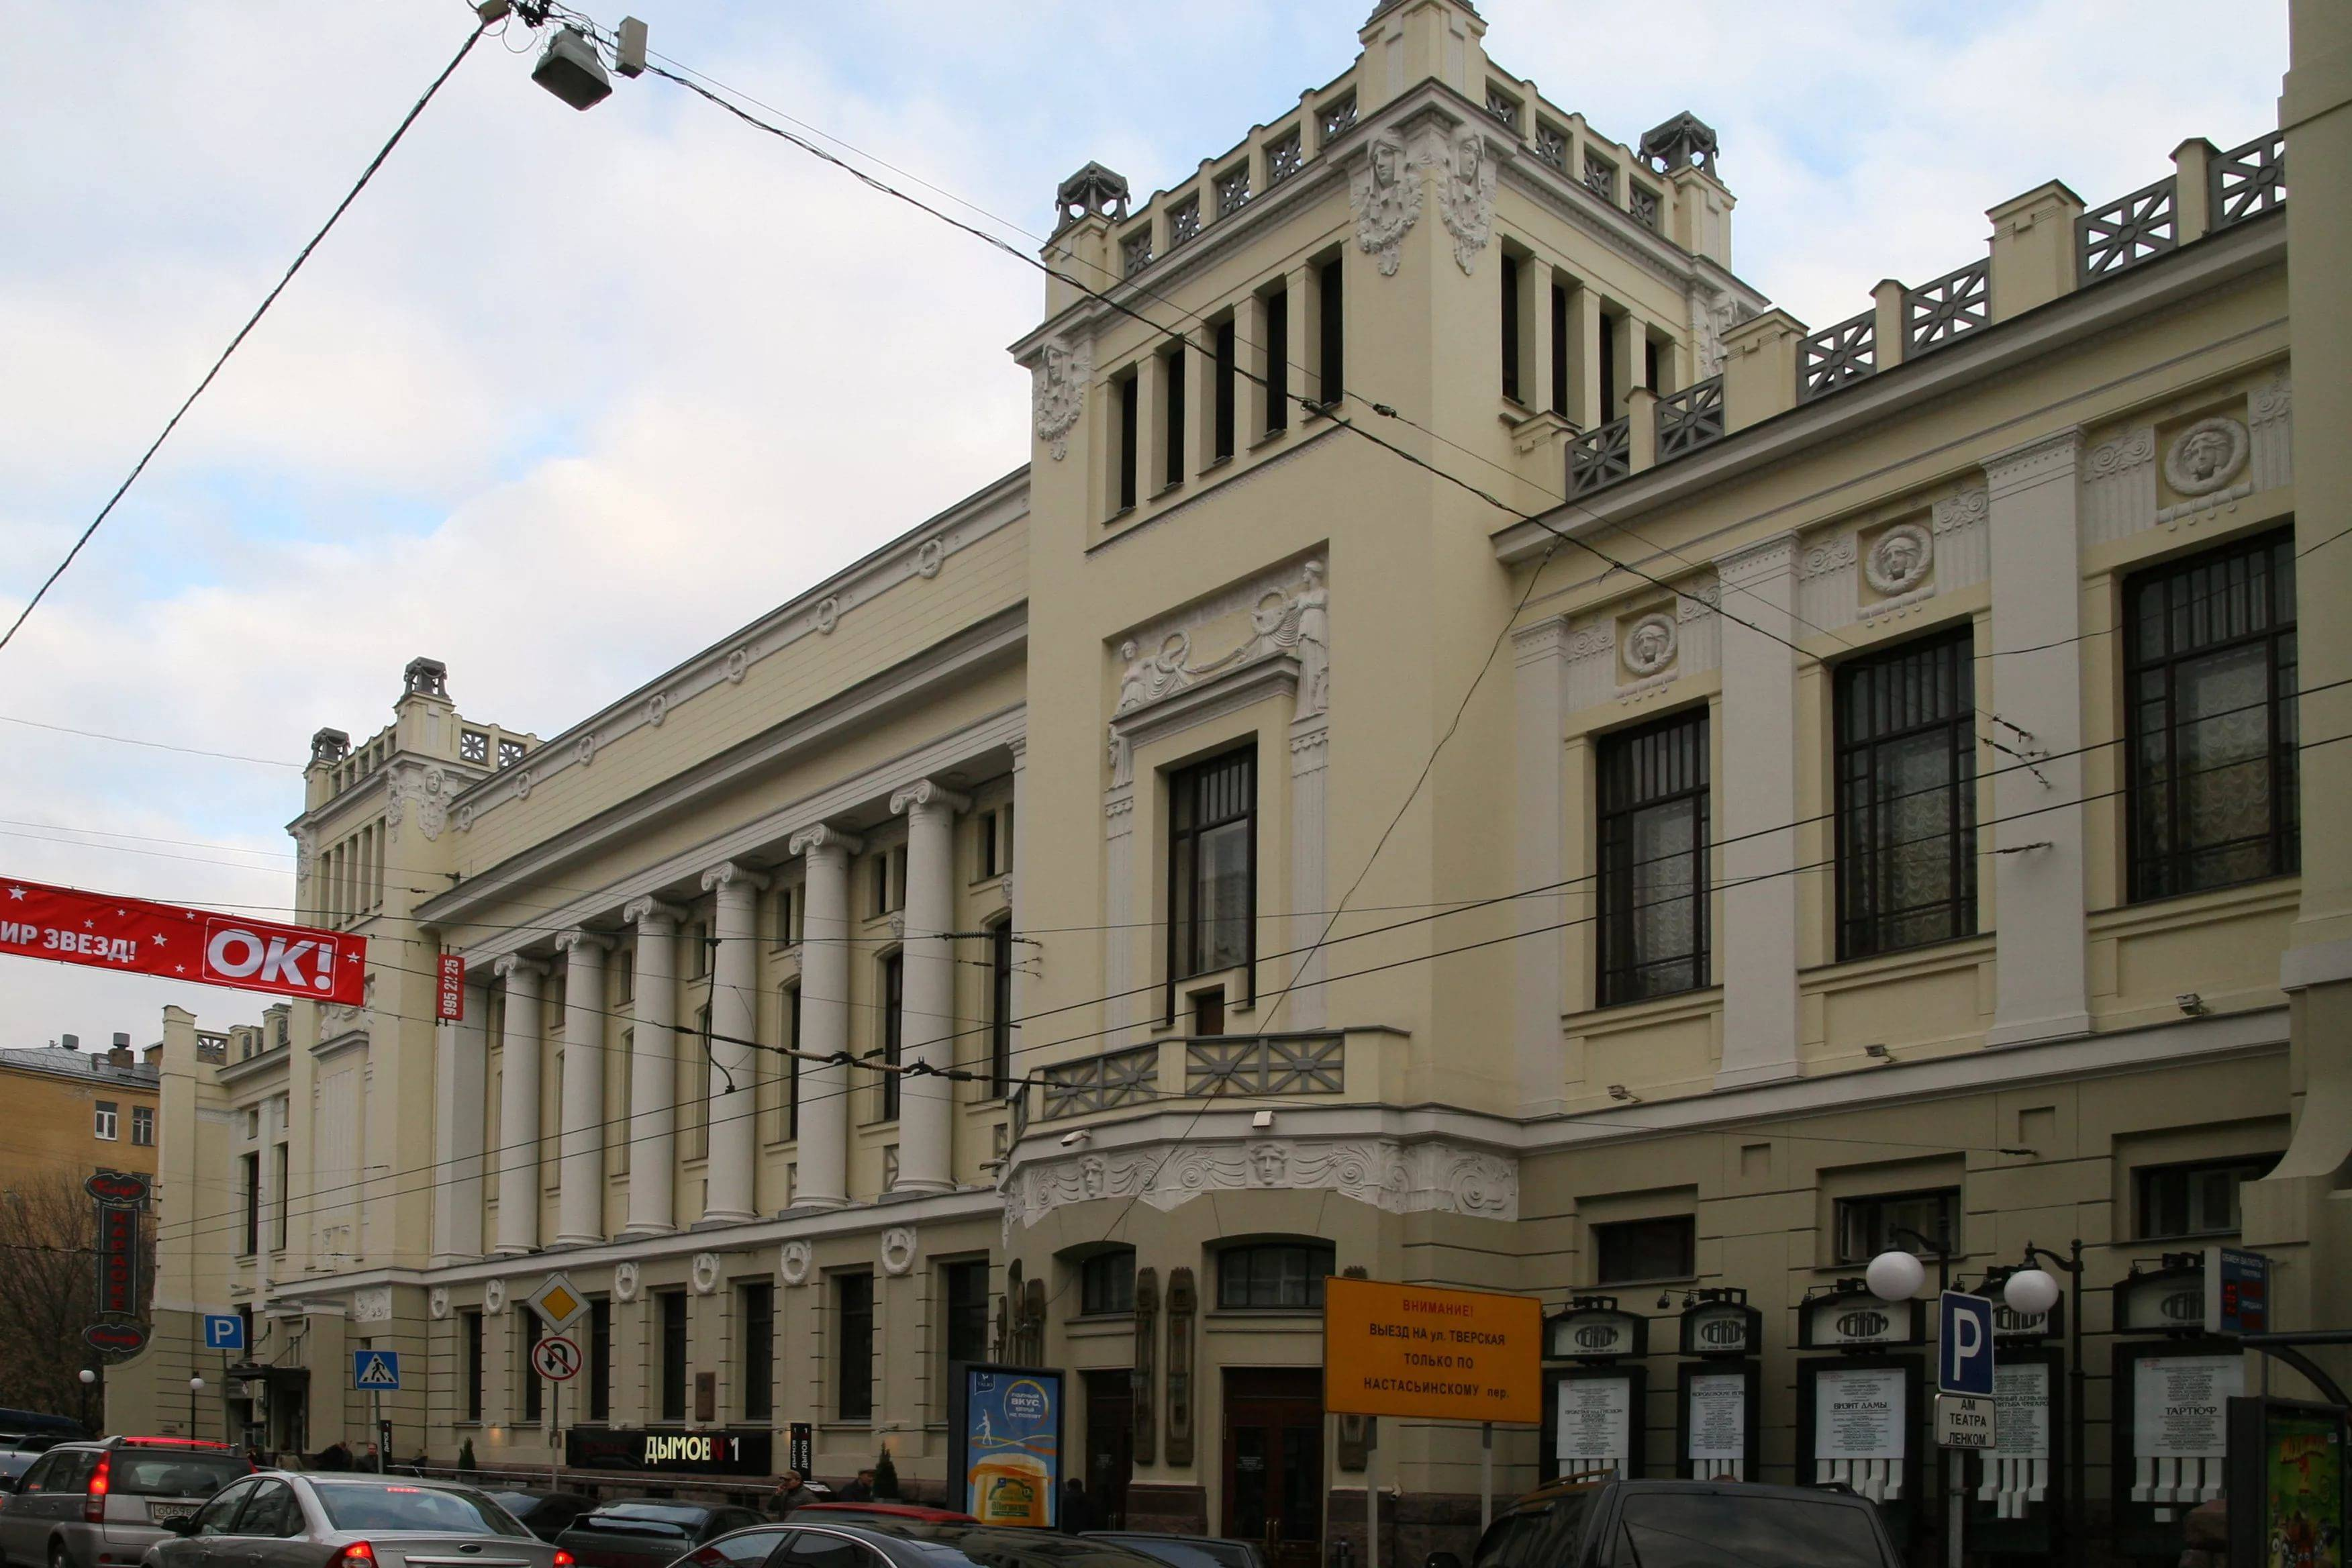 Butyrskaya Prison: photos, location, history and famous prisoners